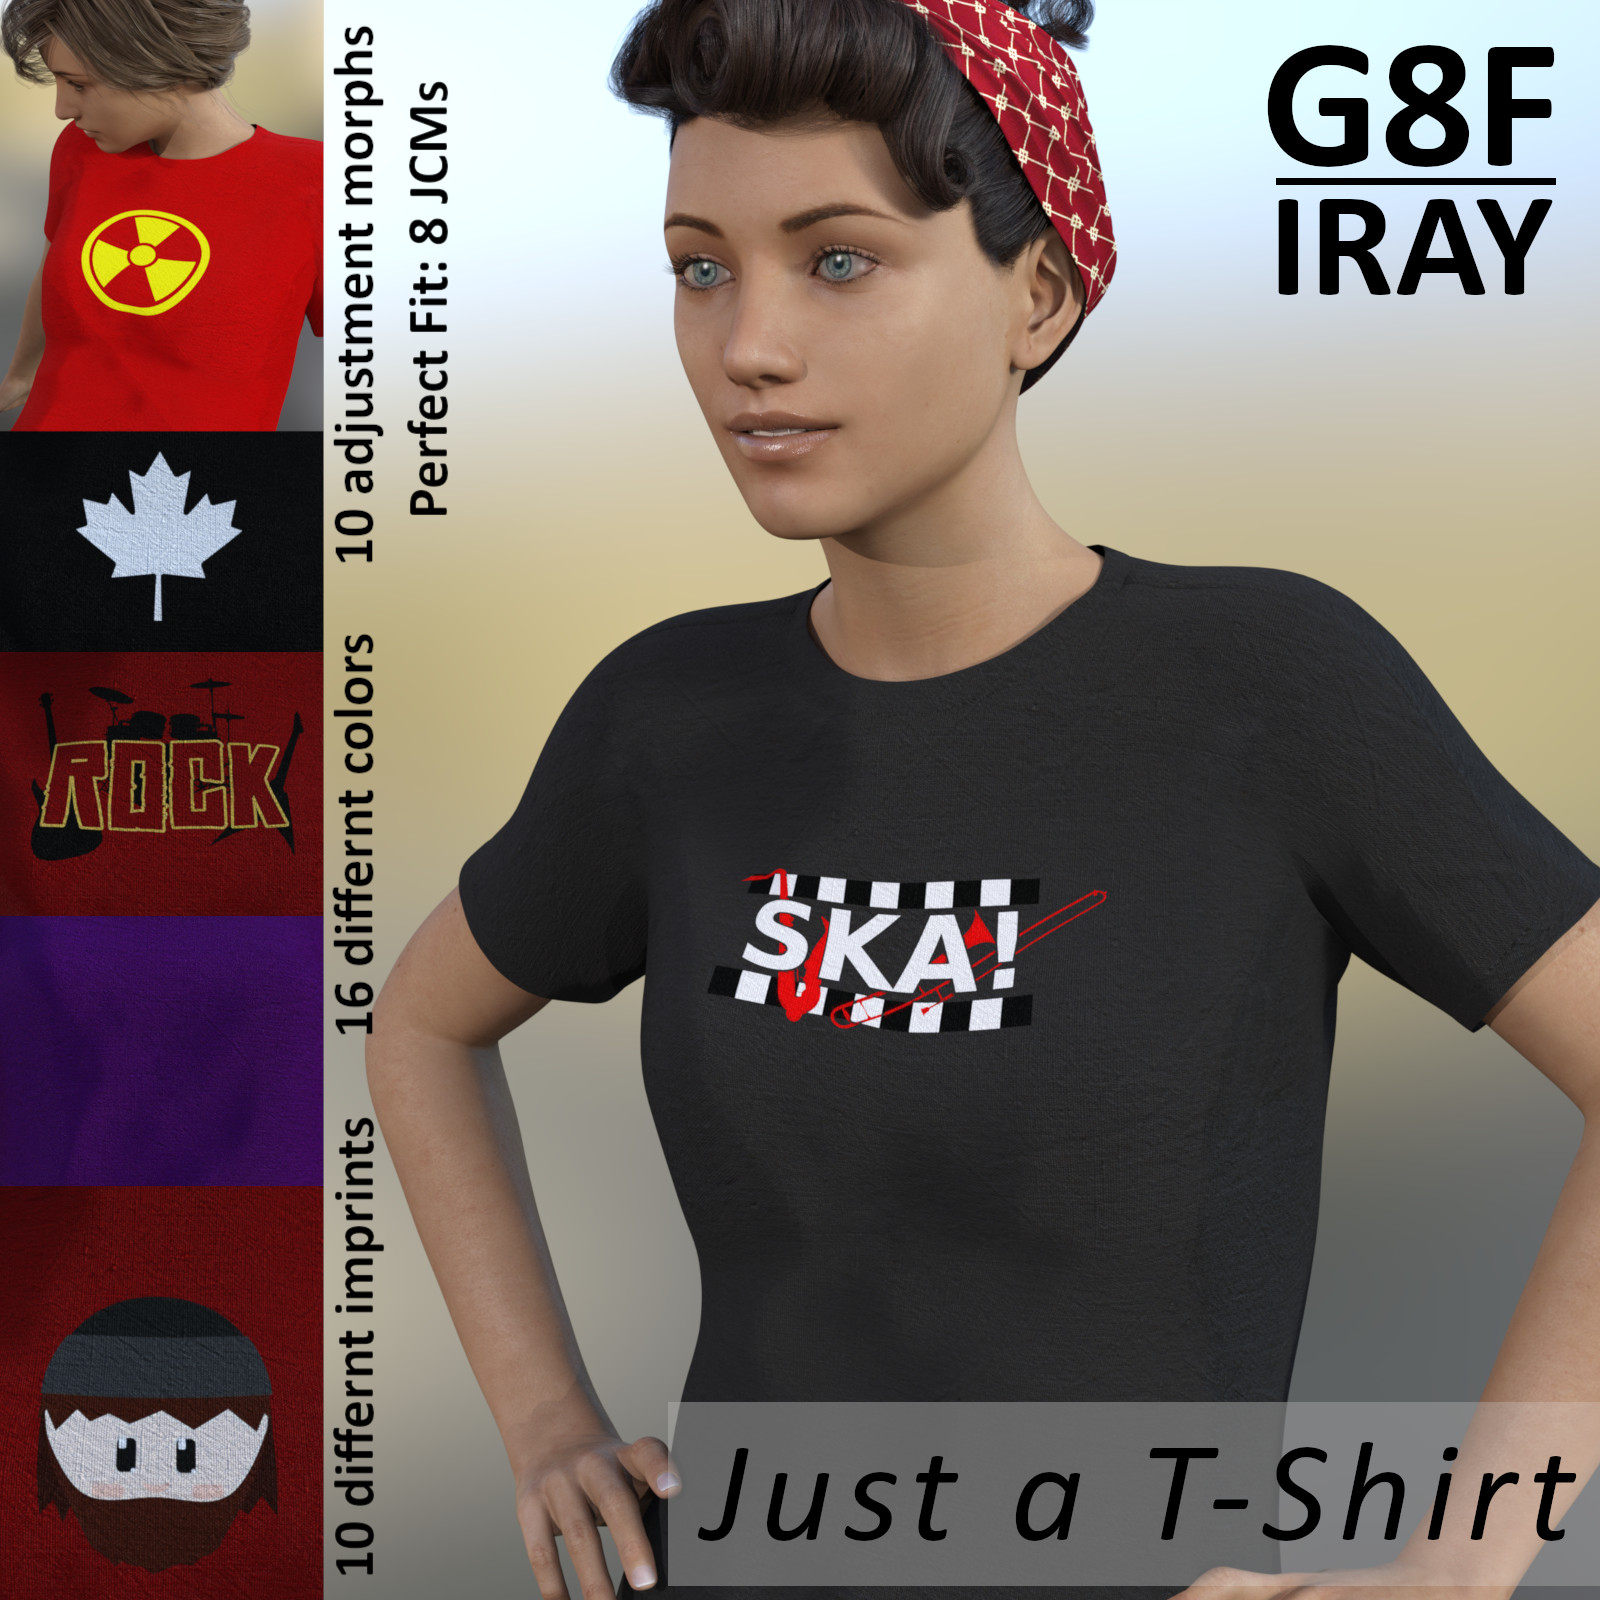 Just a T-Shirt for G8F Iray - Genesis 8 Female Shirt